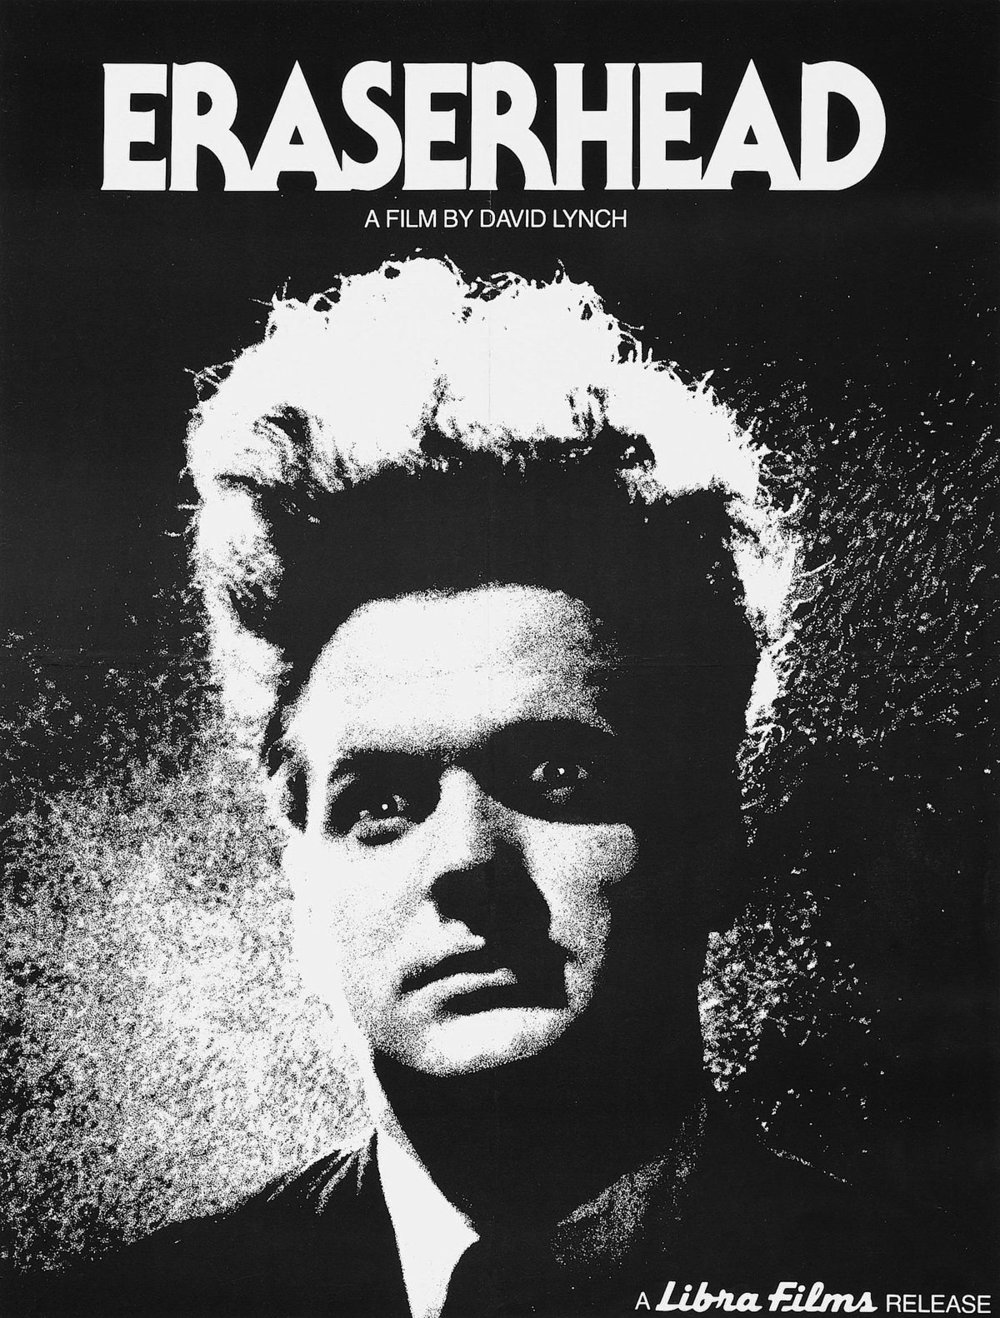 Eraserhead (1977) - Directed by: David LynchStarring: Jack Nance, Charlotte Stewart, Allen Joseph Rated: NR (Best Guess PG-13)Running Time: 1h 29mTMM Score: 5 stars out of 5STRENGTHS: Overall Directorial VisionWEAKNESSES: It's Weird Dude.